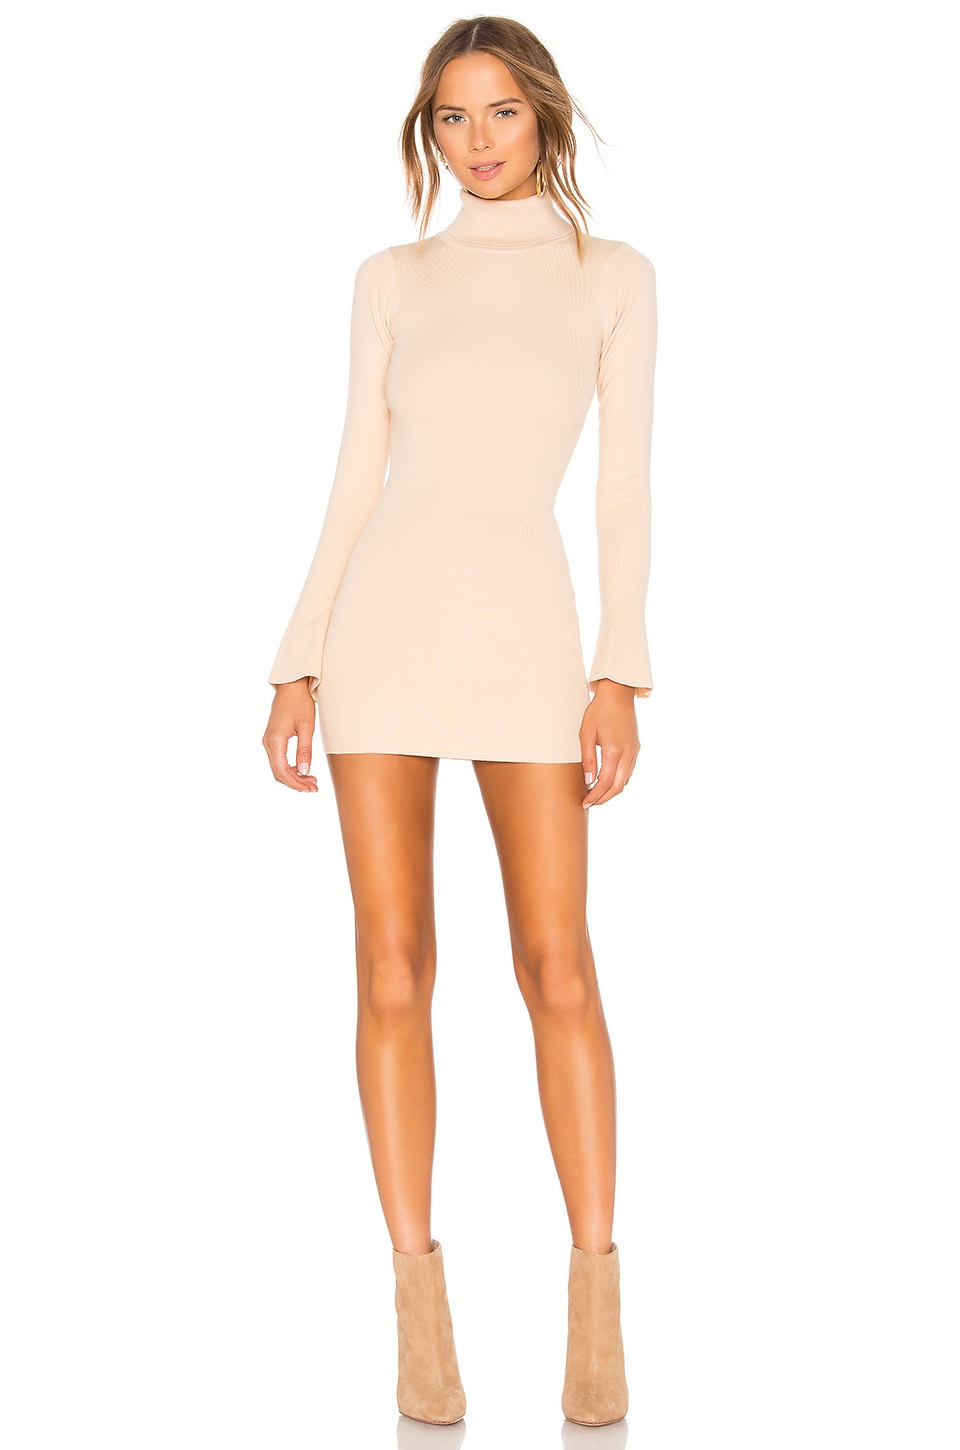 Lovers + Friends Unstoppable Dress in Beige